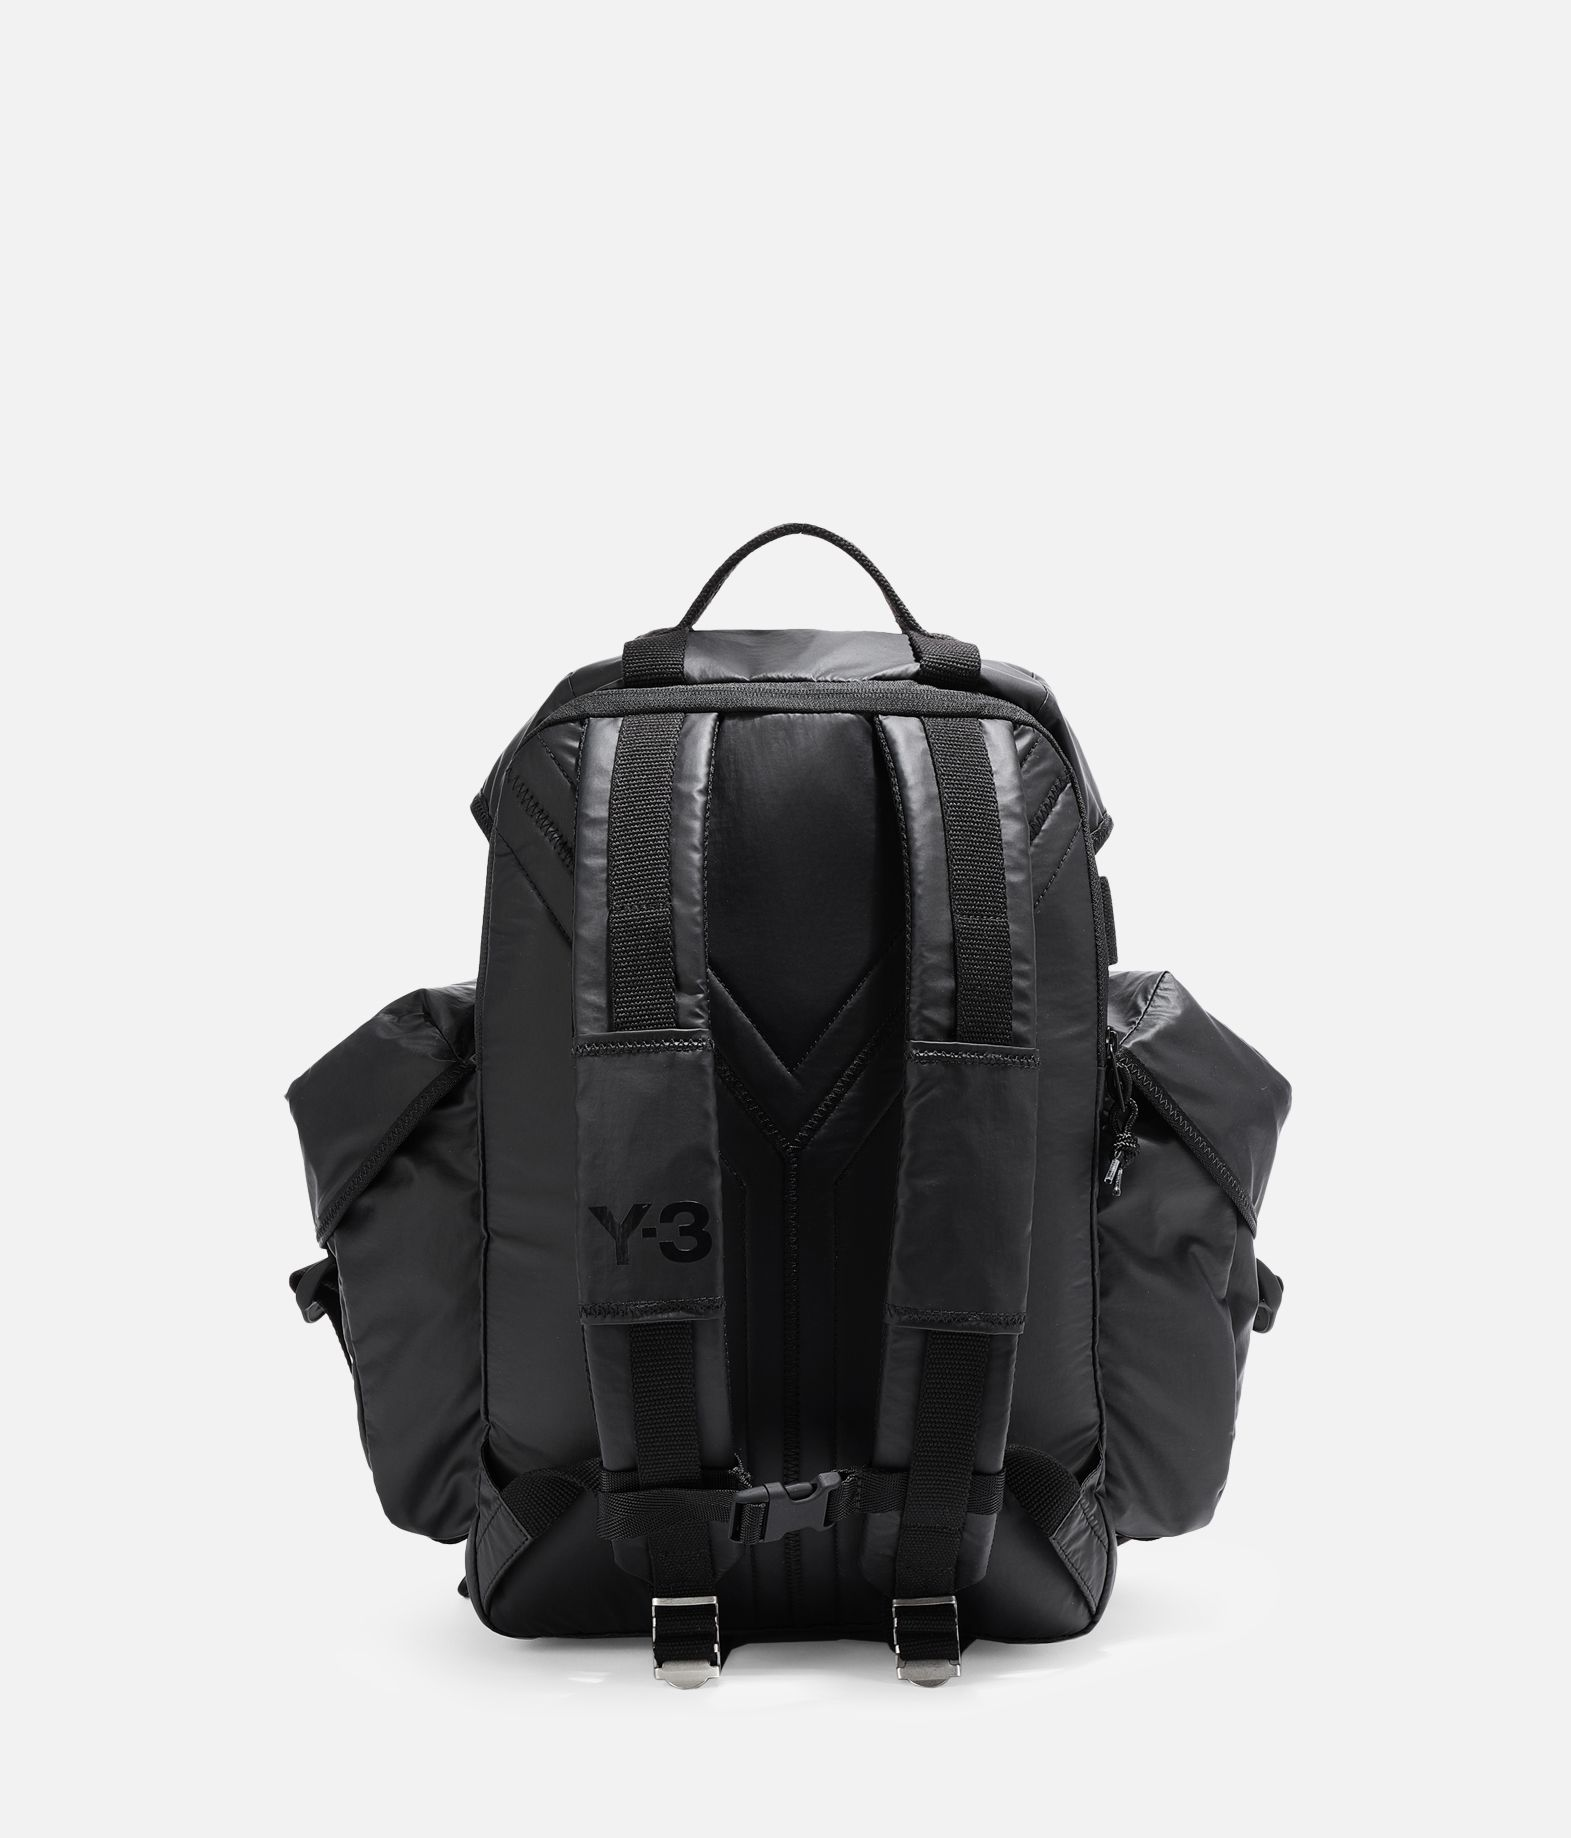 Y-3 Y-3 XS Utility Bag リュックサック E d